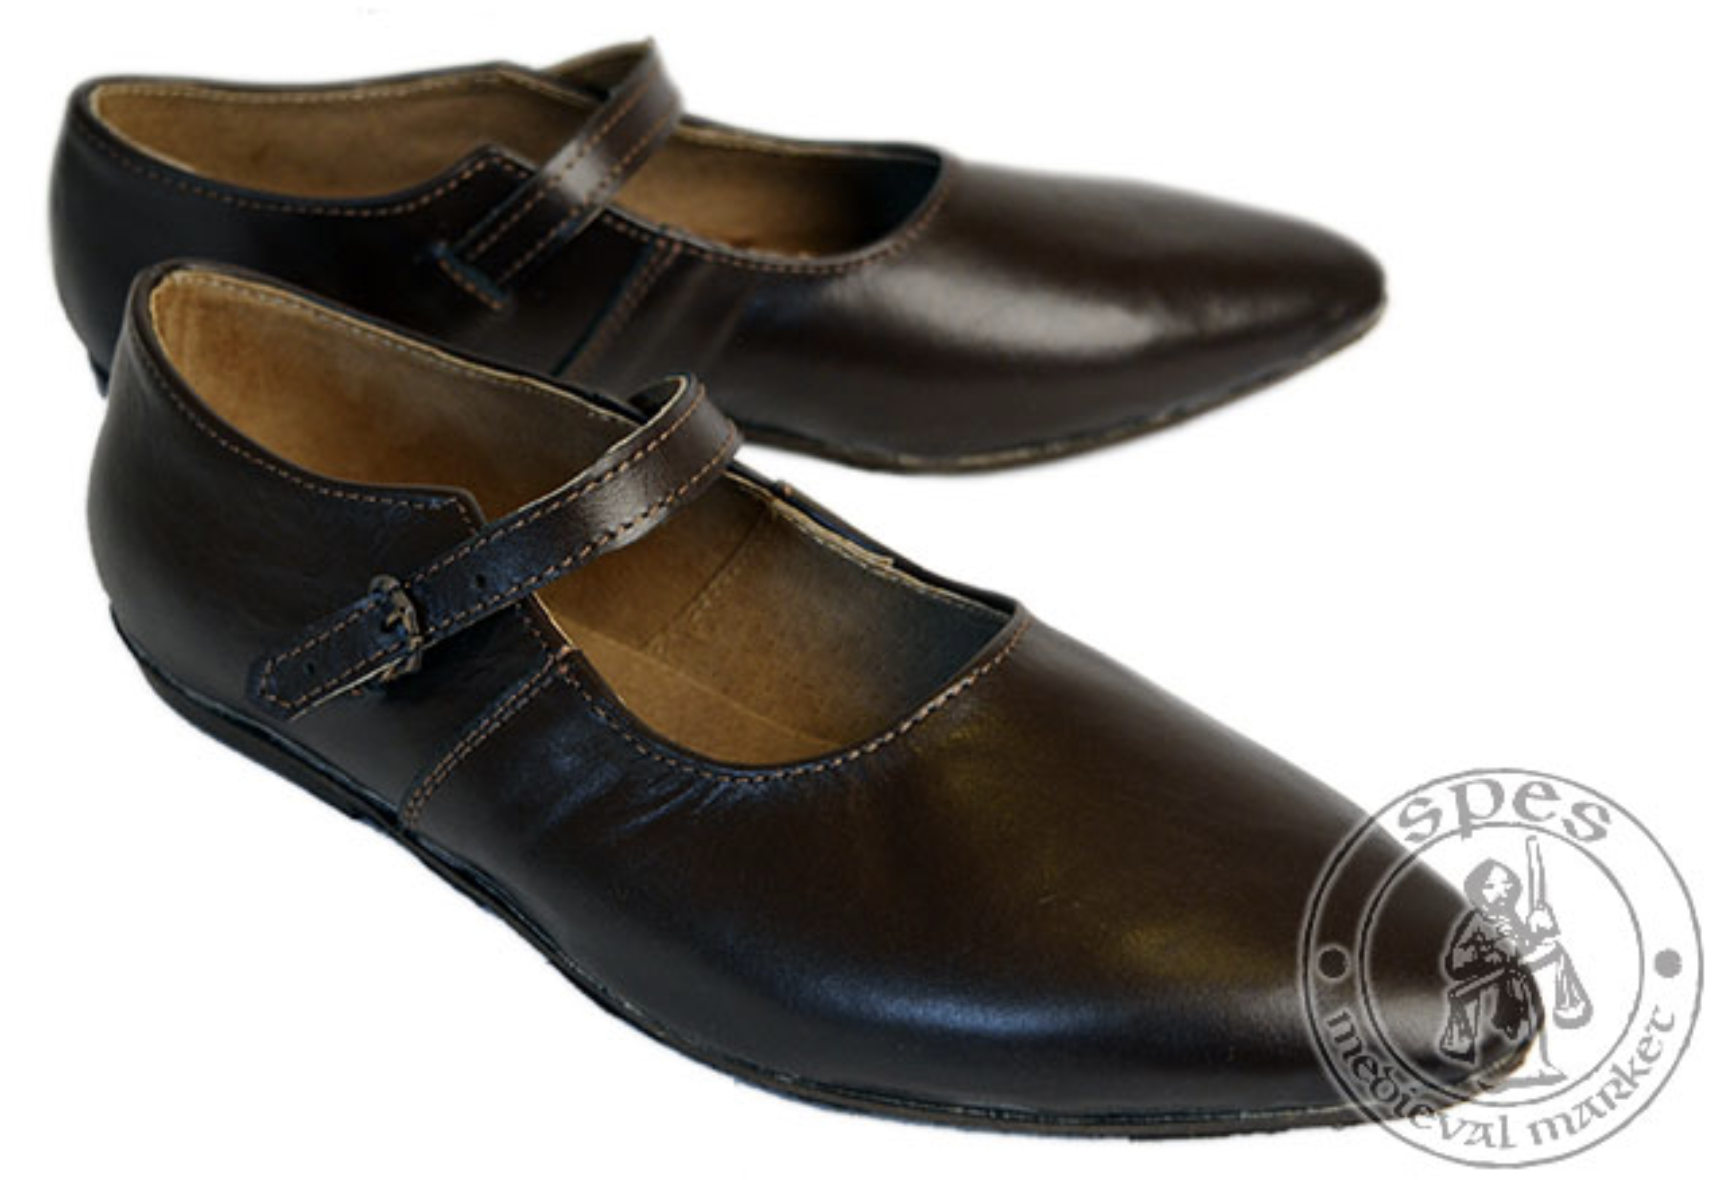 Chaussures Dame : KSE1312 - 90 €